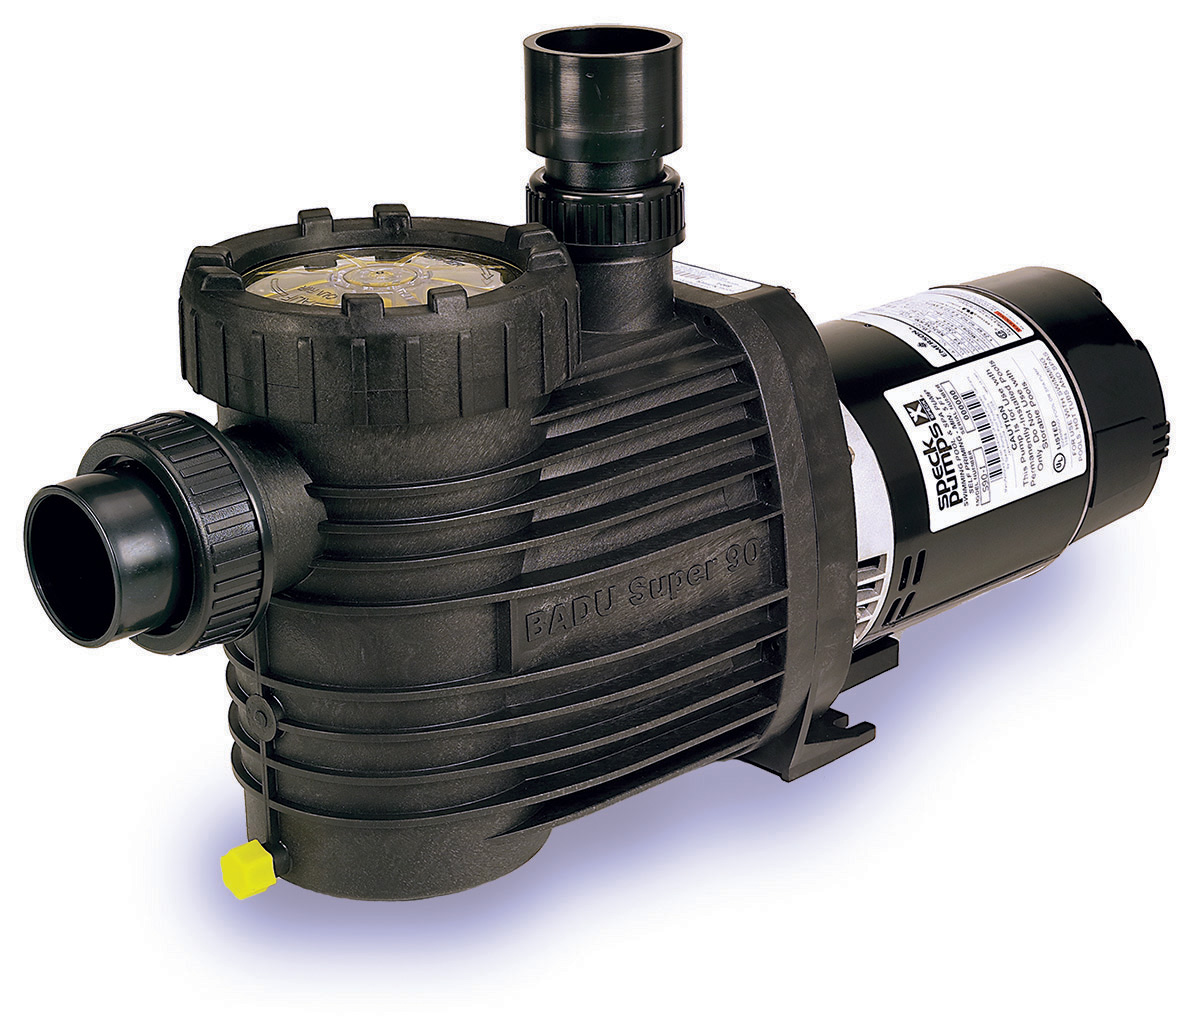 Speck®S90 - The Speck Model S90 medium head pump has been engineered for durability and quiet performance. All models are equipped with 2″ suction and 1.5″/2″ discharge, ensuring optimum efficiency. Speck's high quality continues in the Model S90 with positive advances to benefit the consumer and the environment.